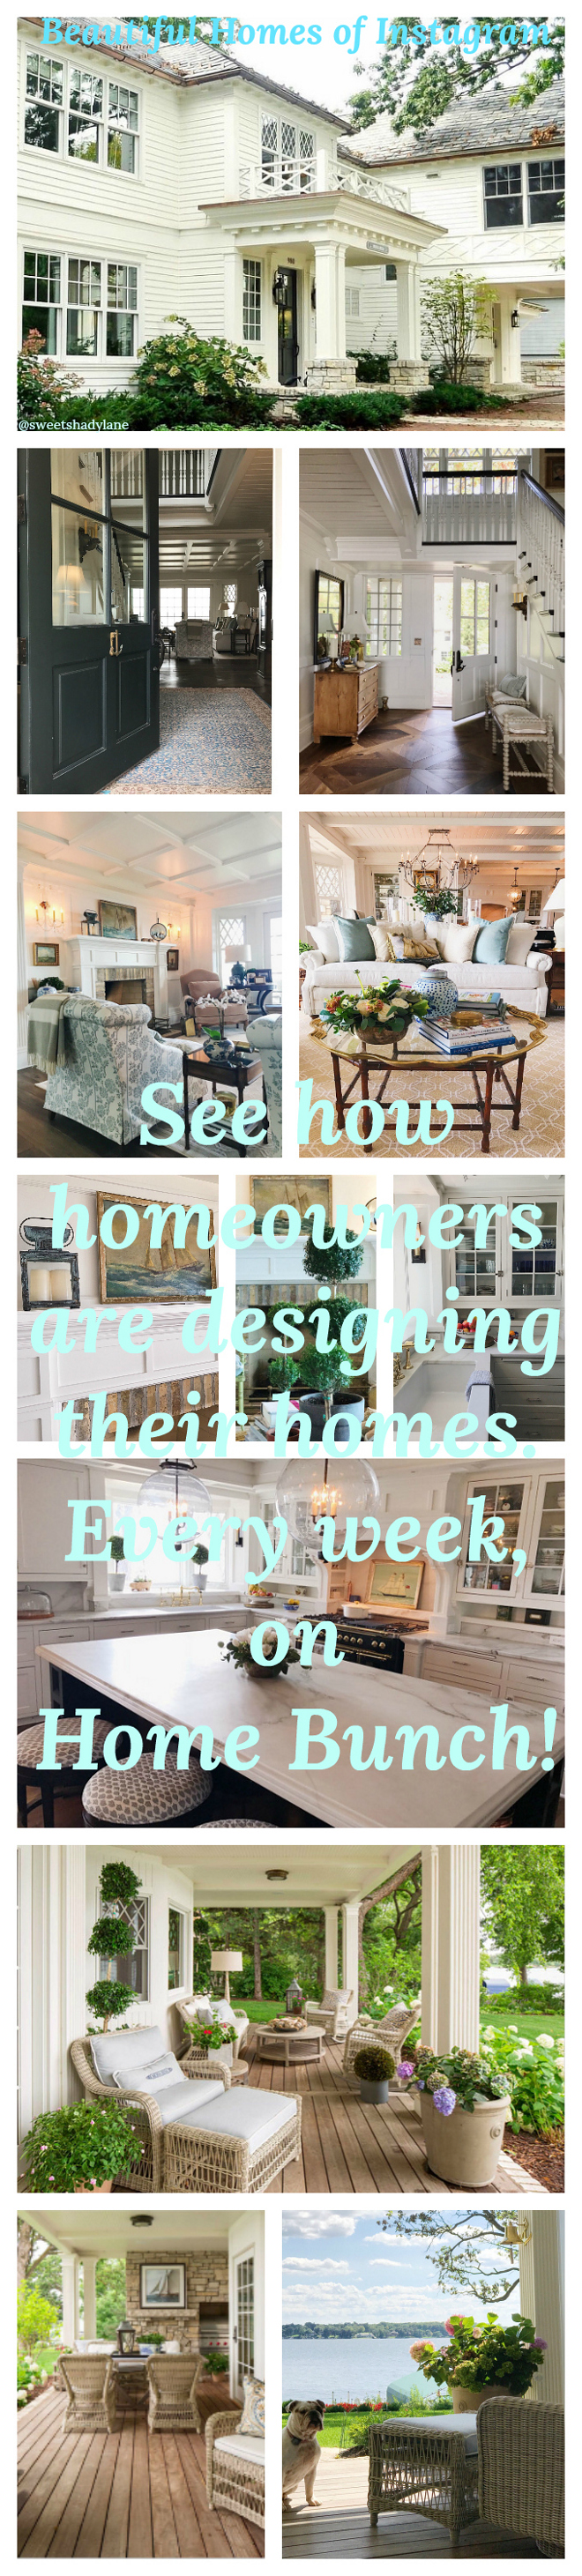 Beautiful Homes of Instagram. See how real homeowners are designing their own homes. Every week on Home Bunch. @SweetShadyLane